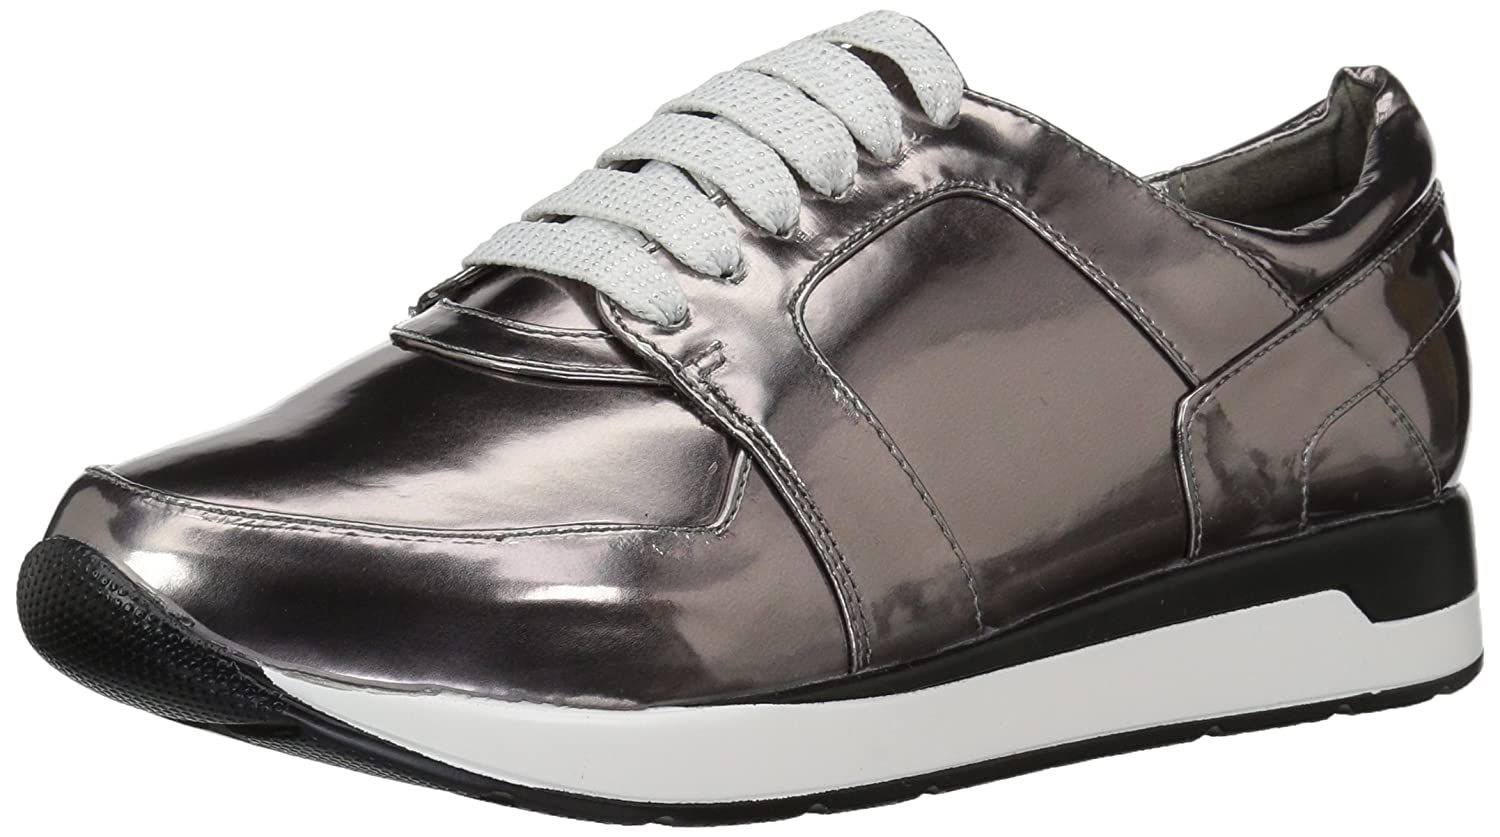 Penny Loves Kenny Women's Techno Fashion Sneaker B073VTD9T3 9 W US|Pewter Metallic